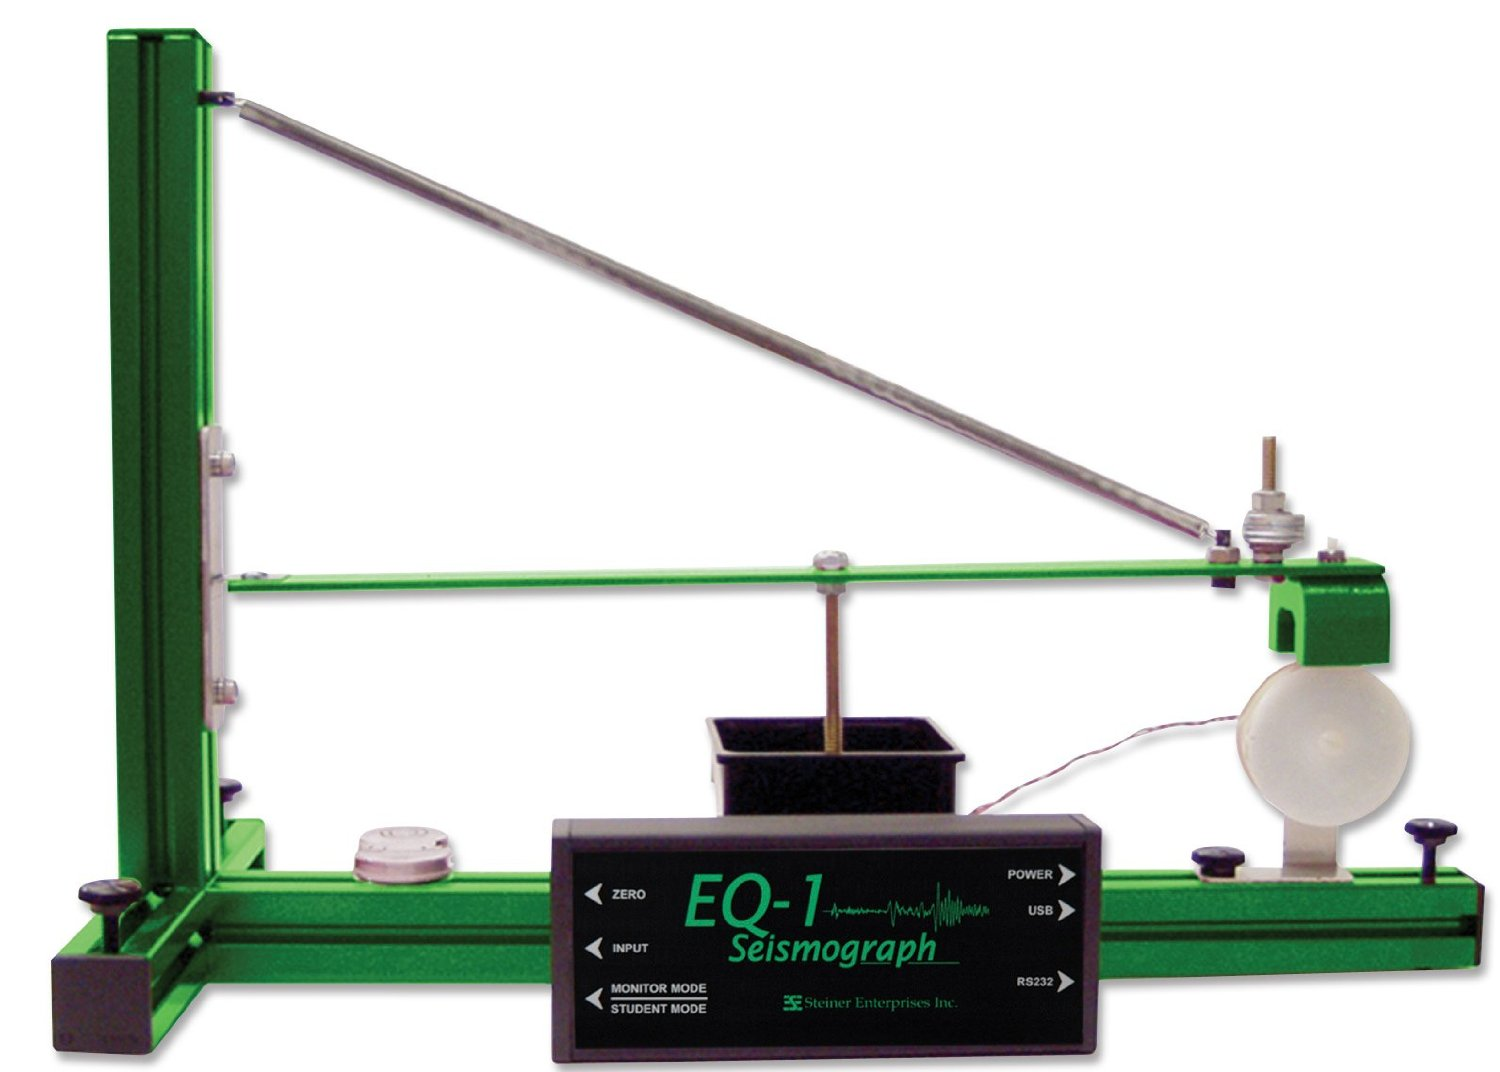 If you can't build your own, this educational seismograph will let you monitor quakes but will set you back over $600 [ Amazon link ]